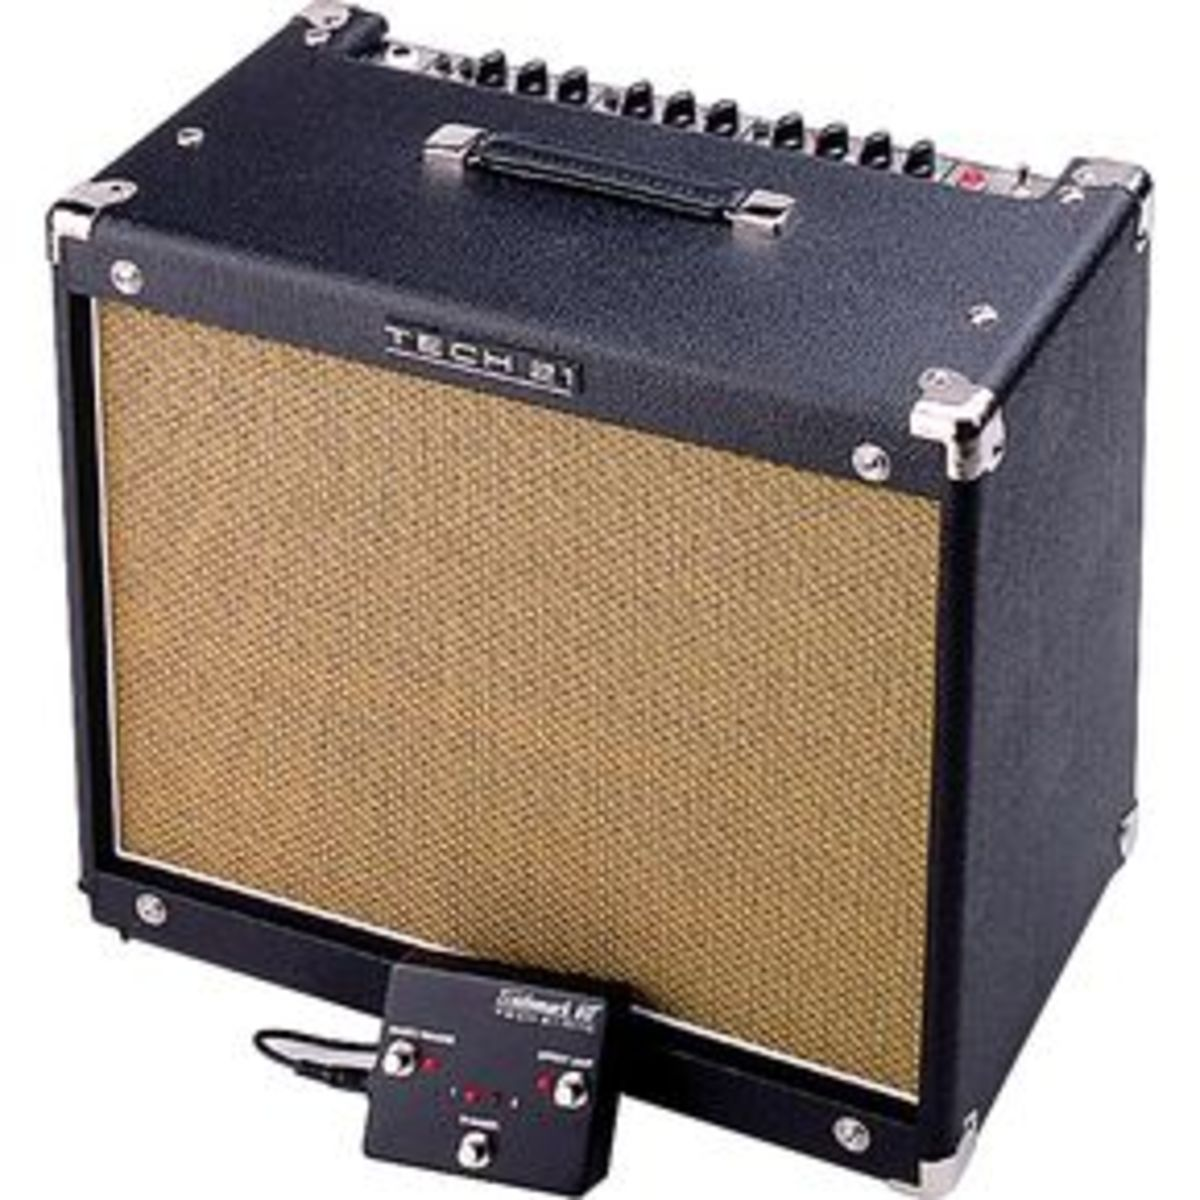 Tech 21's Trademark 60 is a solid state amplifier that utilizes analog modeling circuitry to create rich, warm tones.